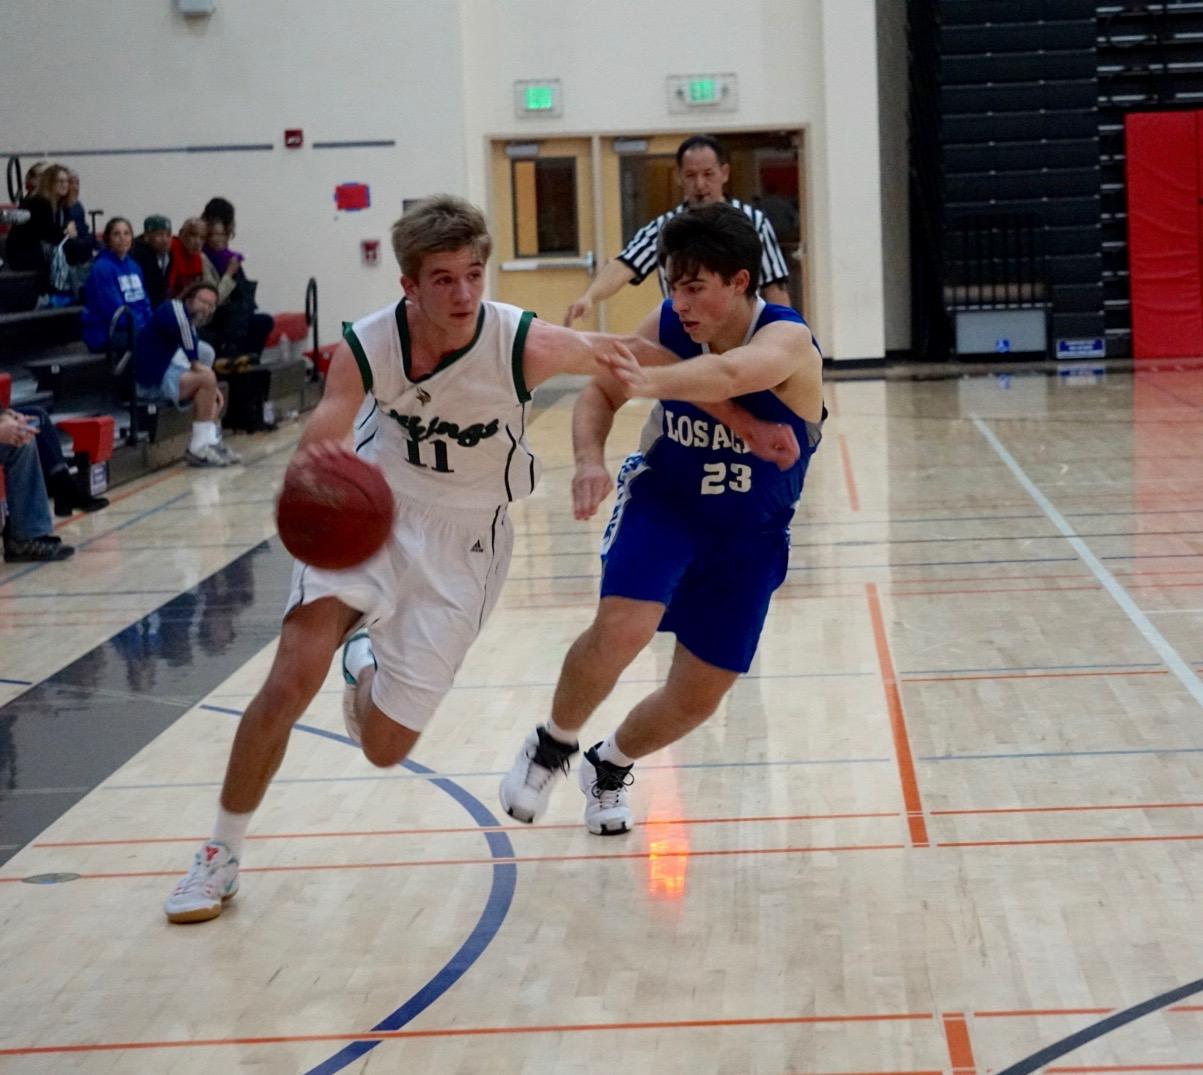 Junior forward Max Dorward fends off a player from Los Altos as he runs down the court.